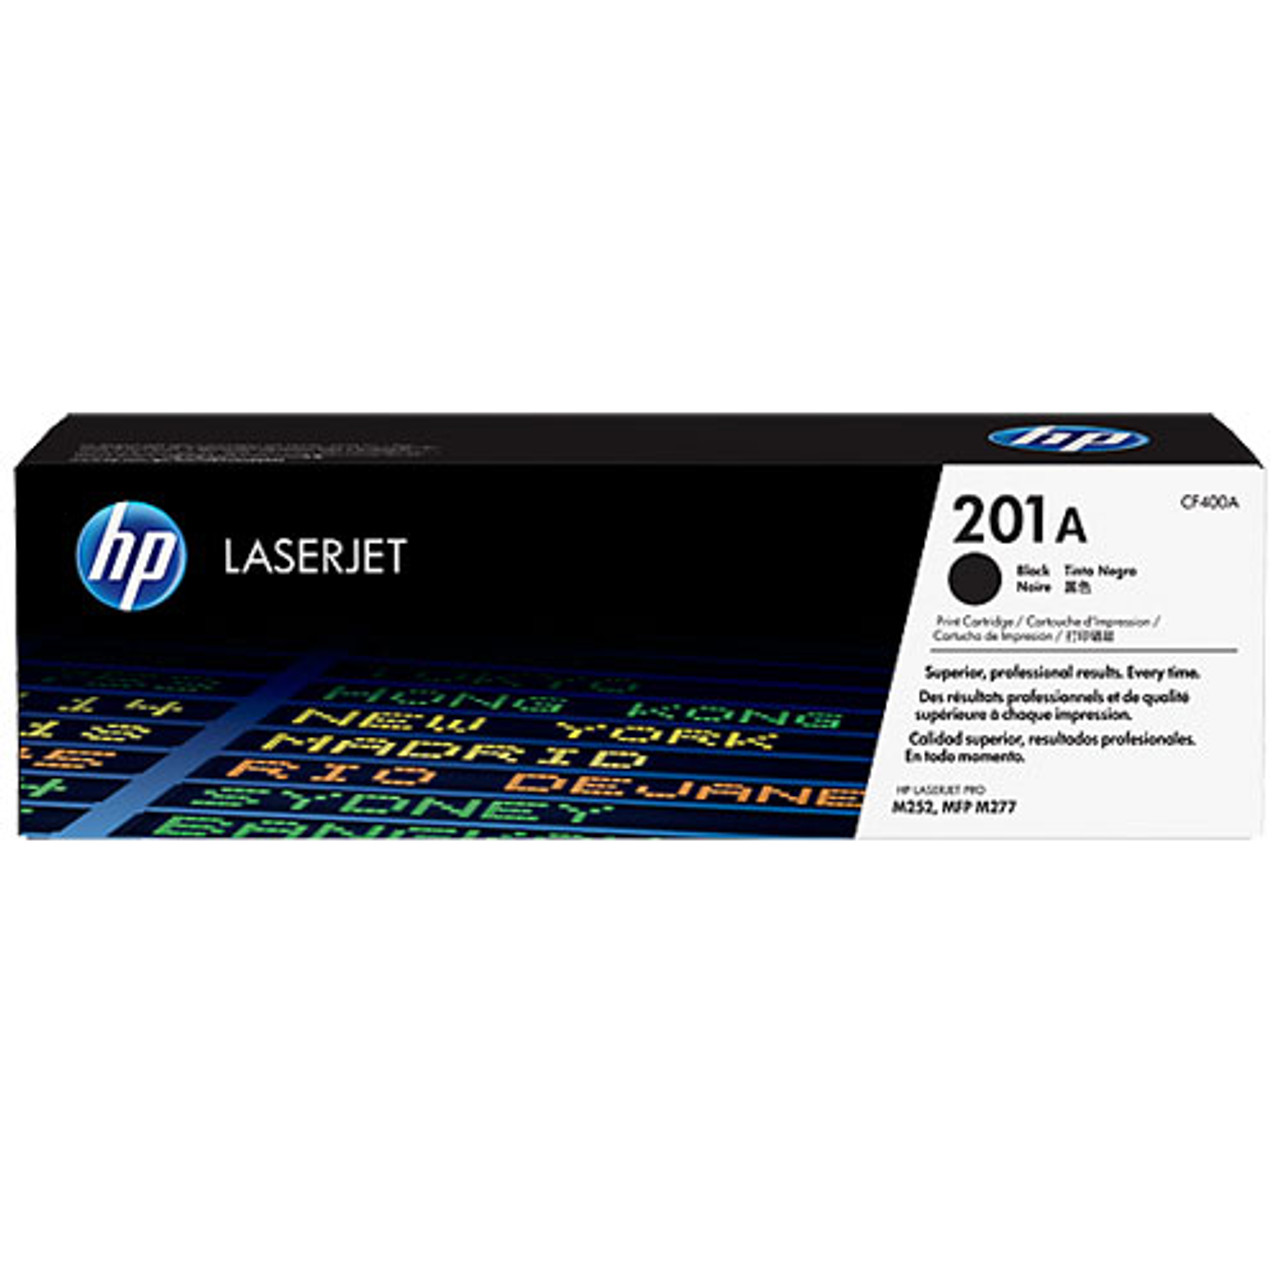 Image for HP #201A Black Toner CF400A 1,500 pages CX Computer Superstore